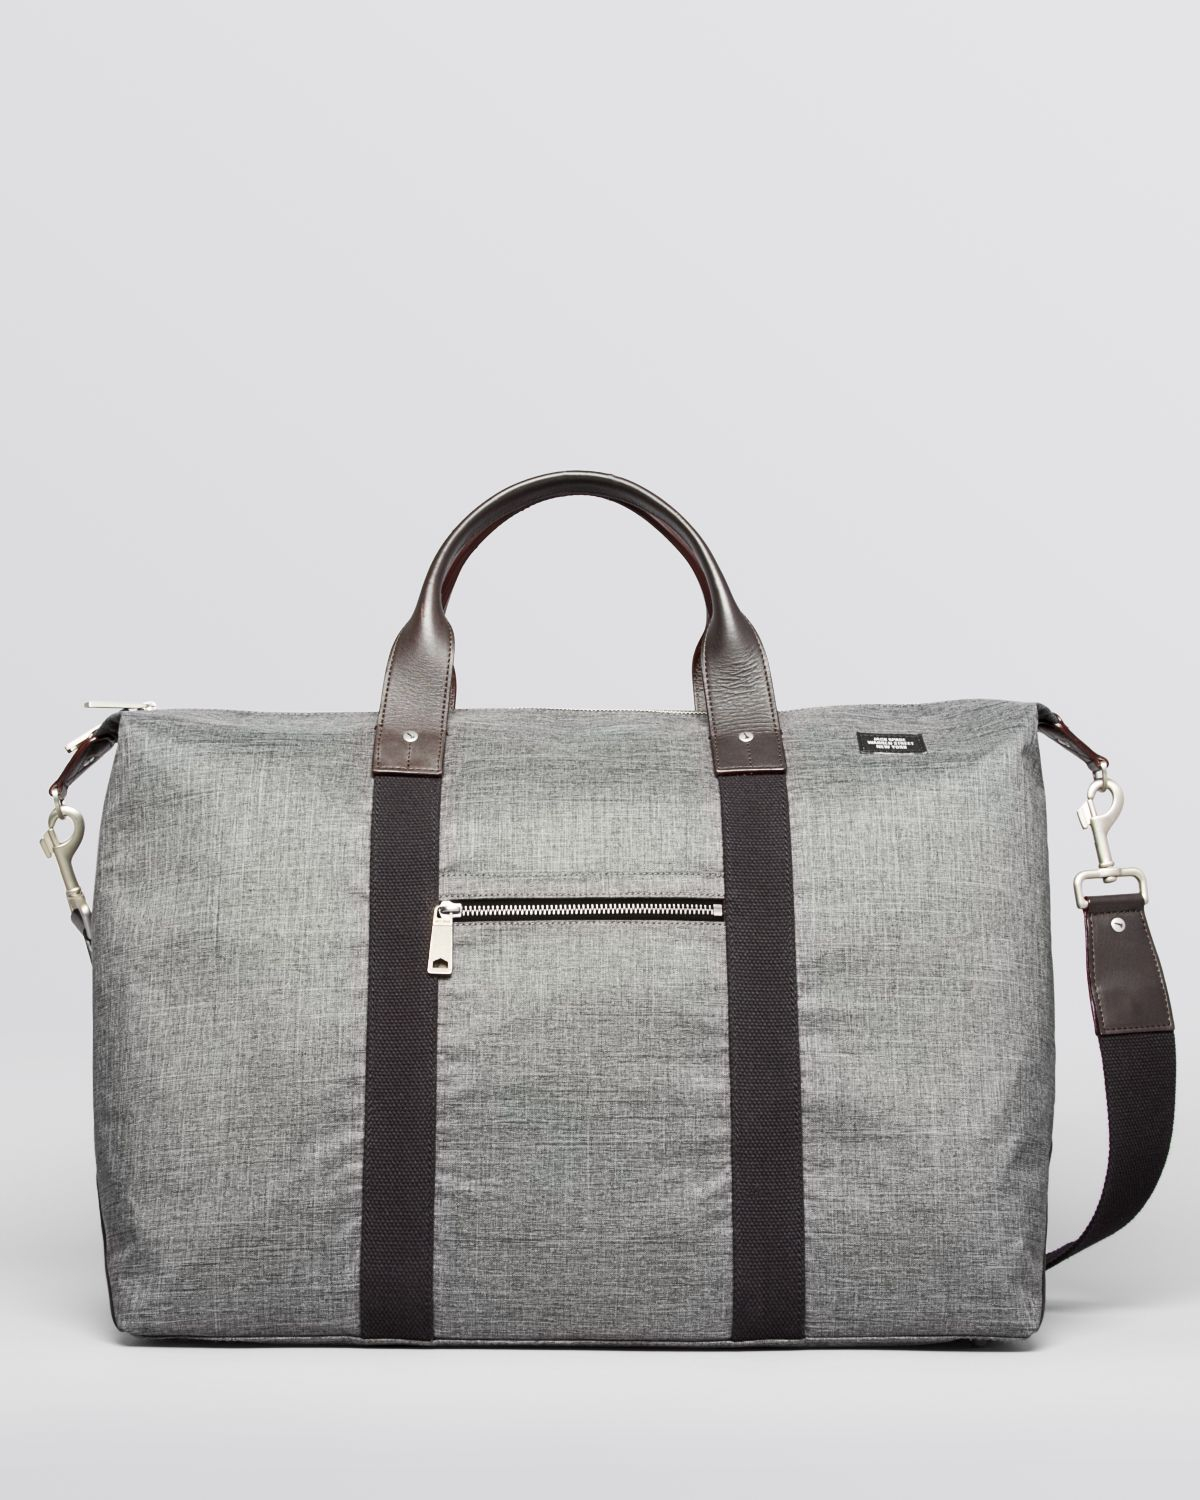 502716e0c8 Lyst - Jack Spade Tech Oxford Wing Duffel Bag in Gray for Men